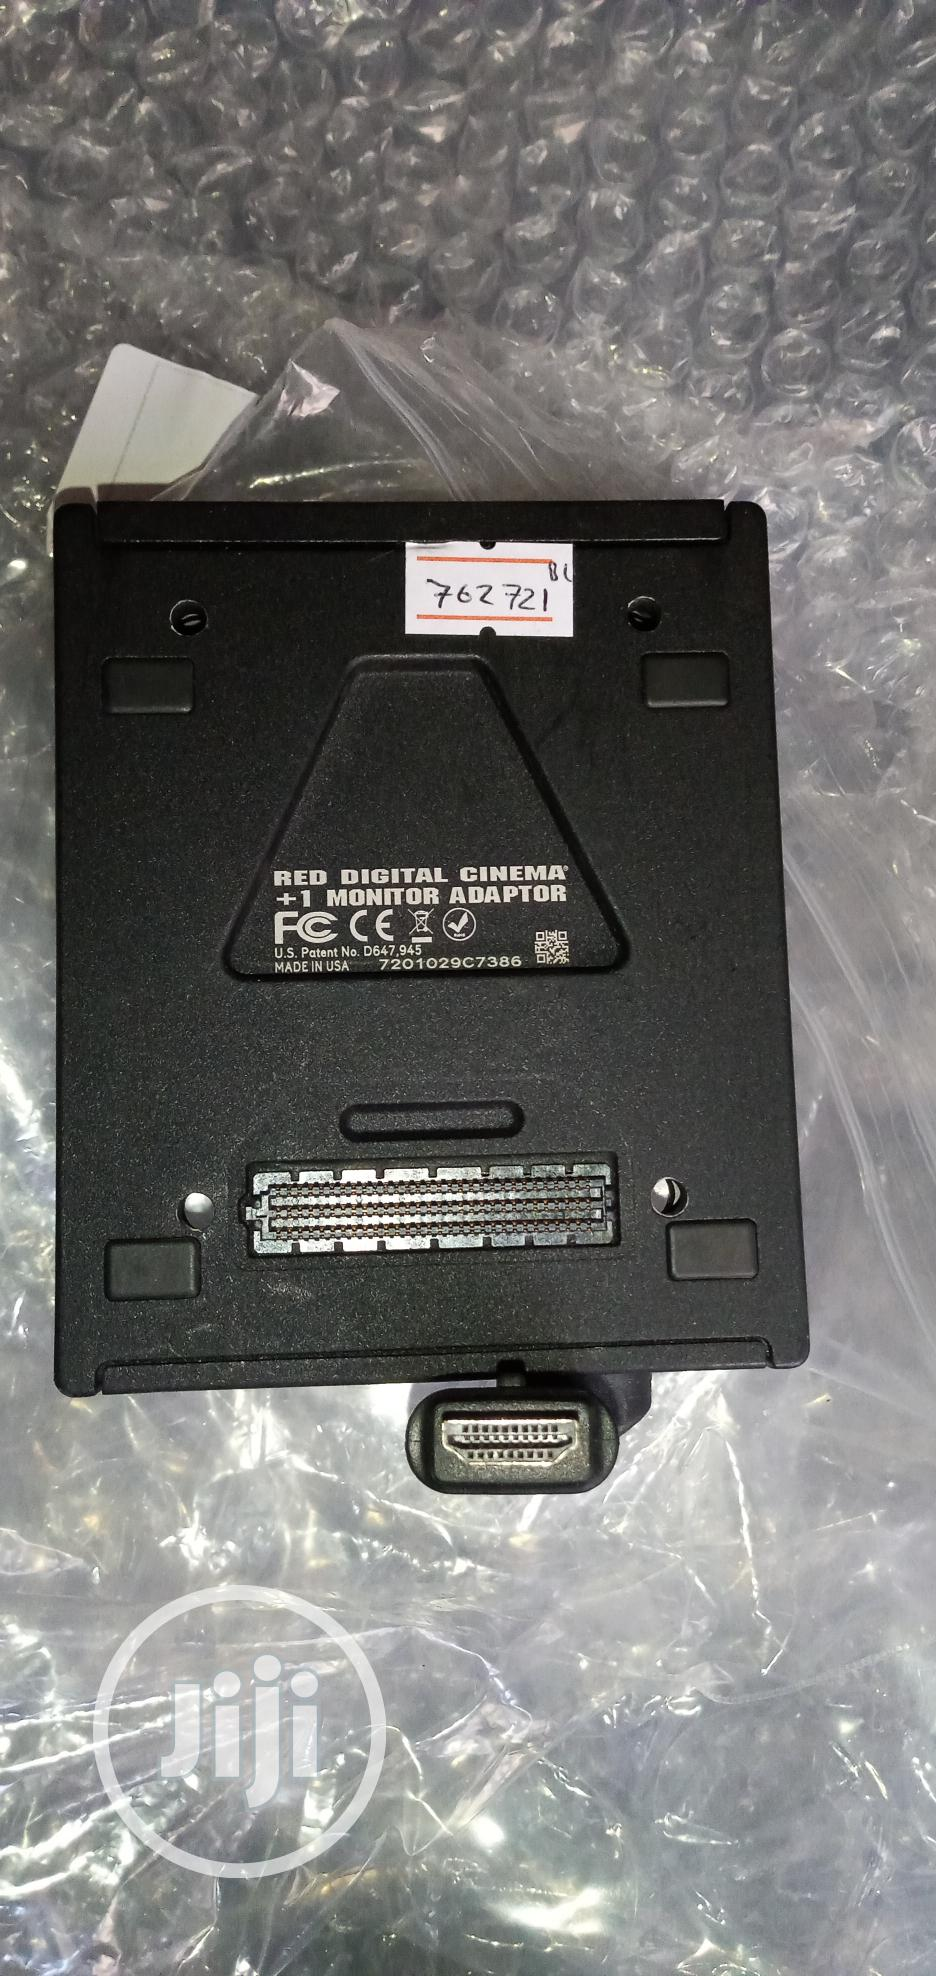 Archive: Red (Epic,Scarlet,Dragon) Camera Hdmi Adaptor Module(ADAPTOR ONLY)